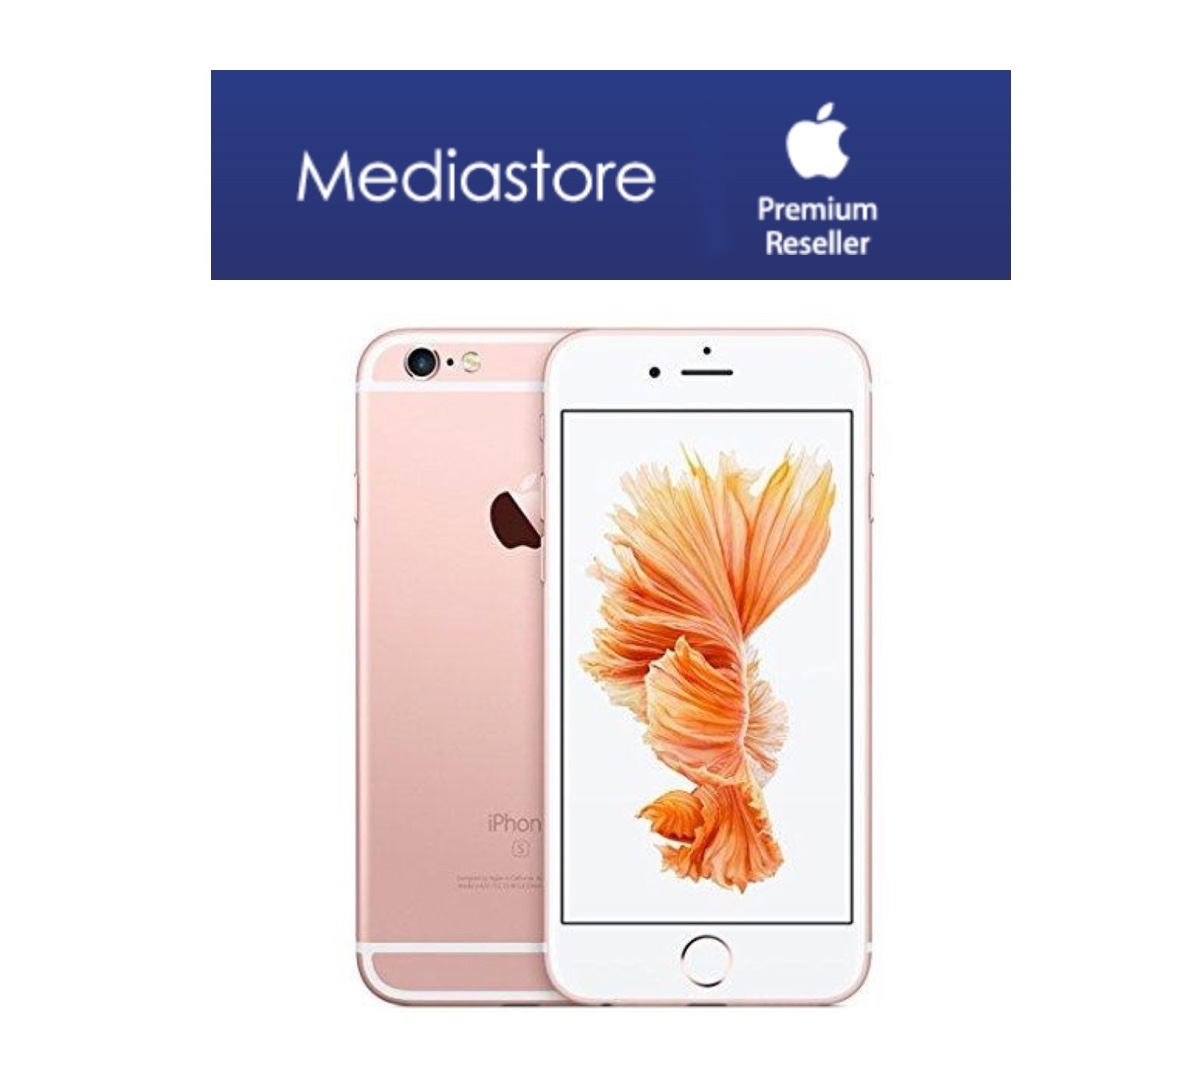 mediastore iphone 6s icon 1200